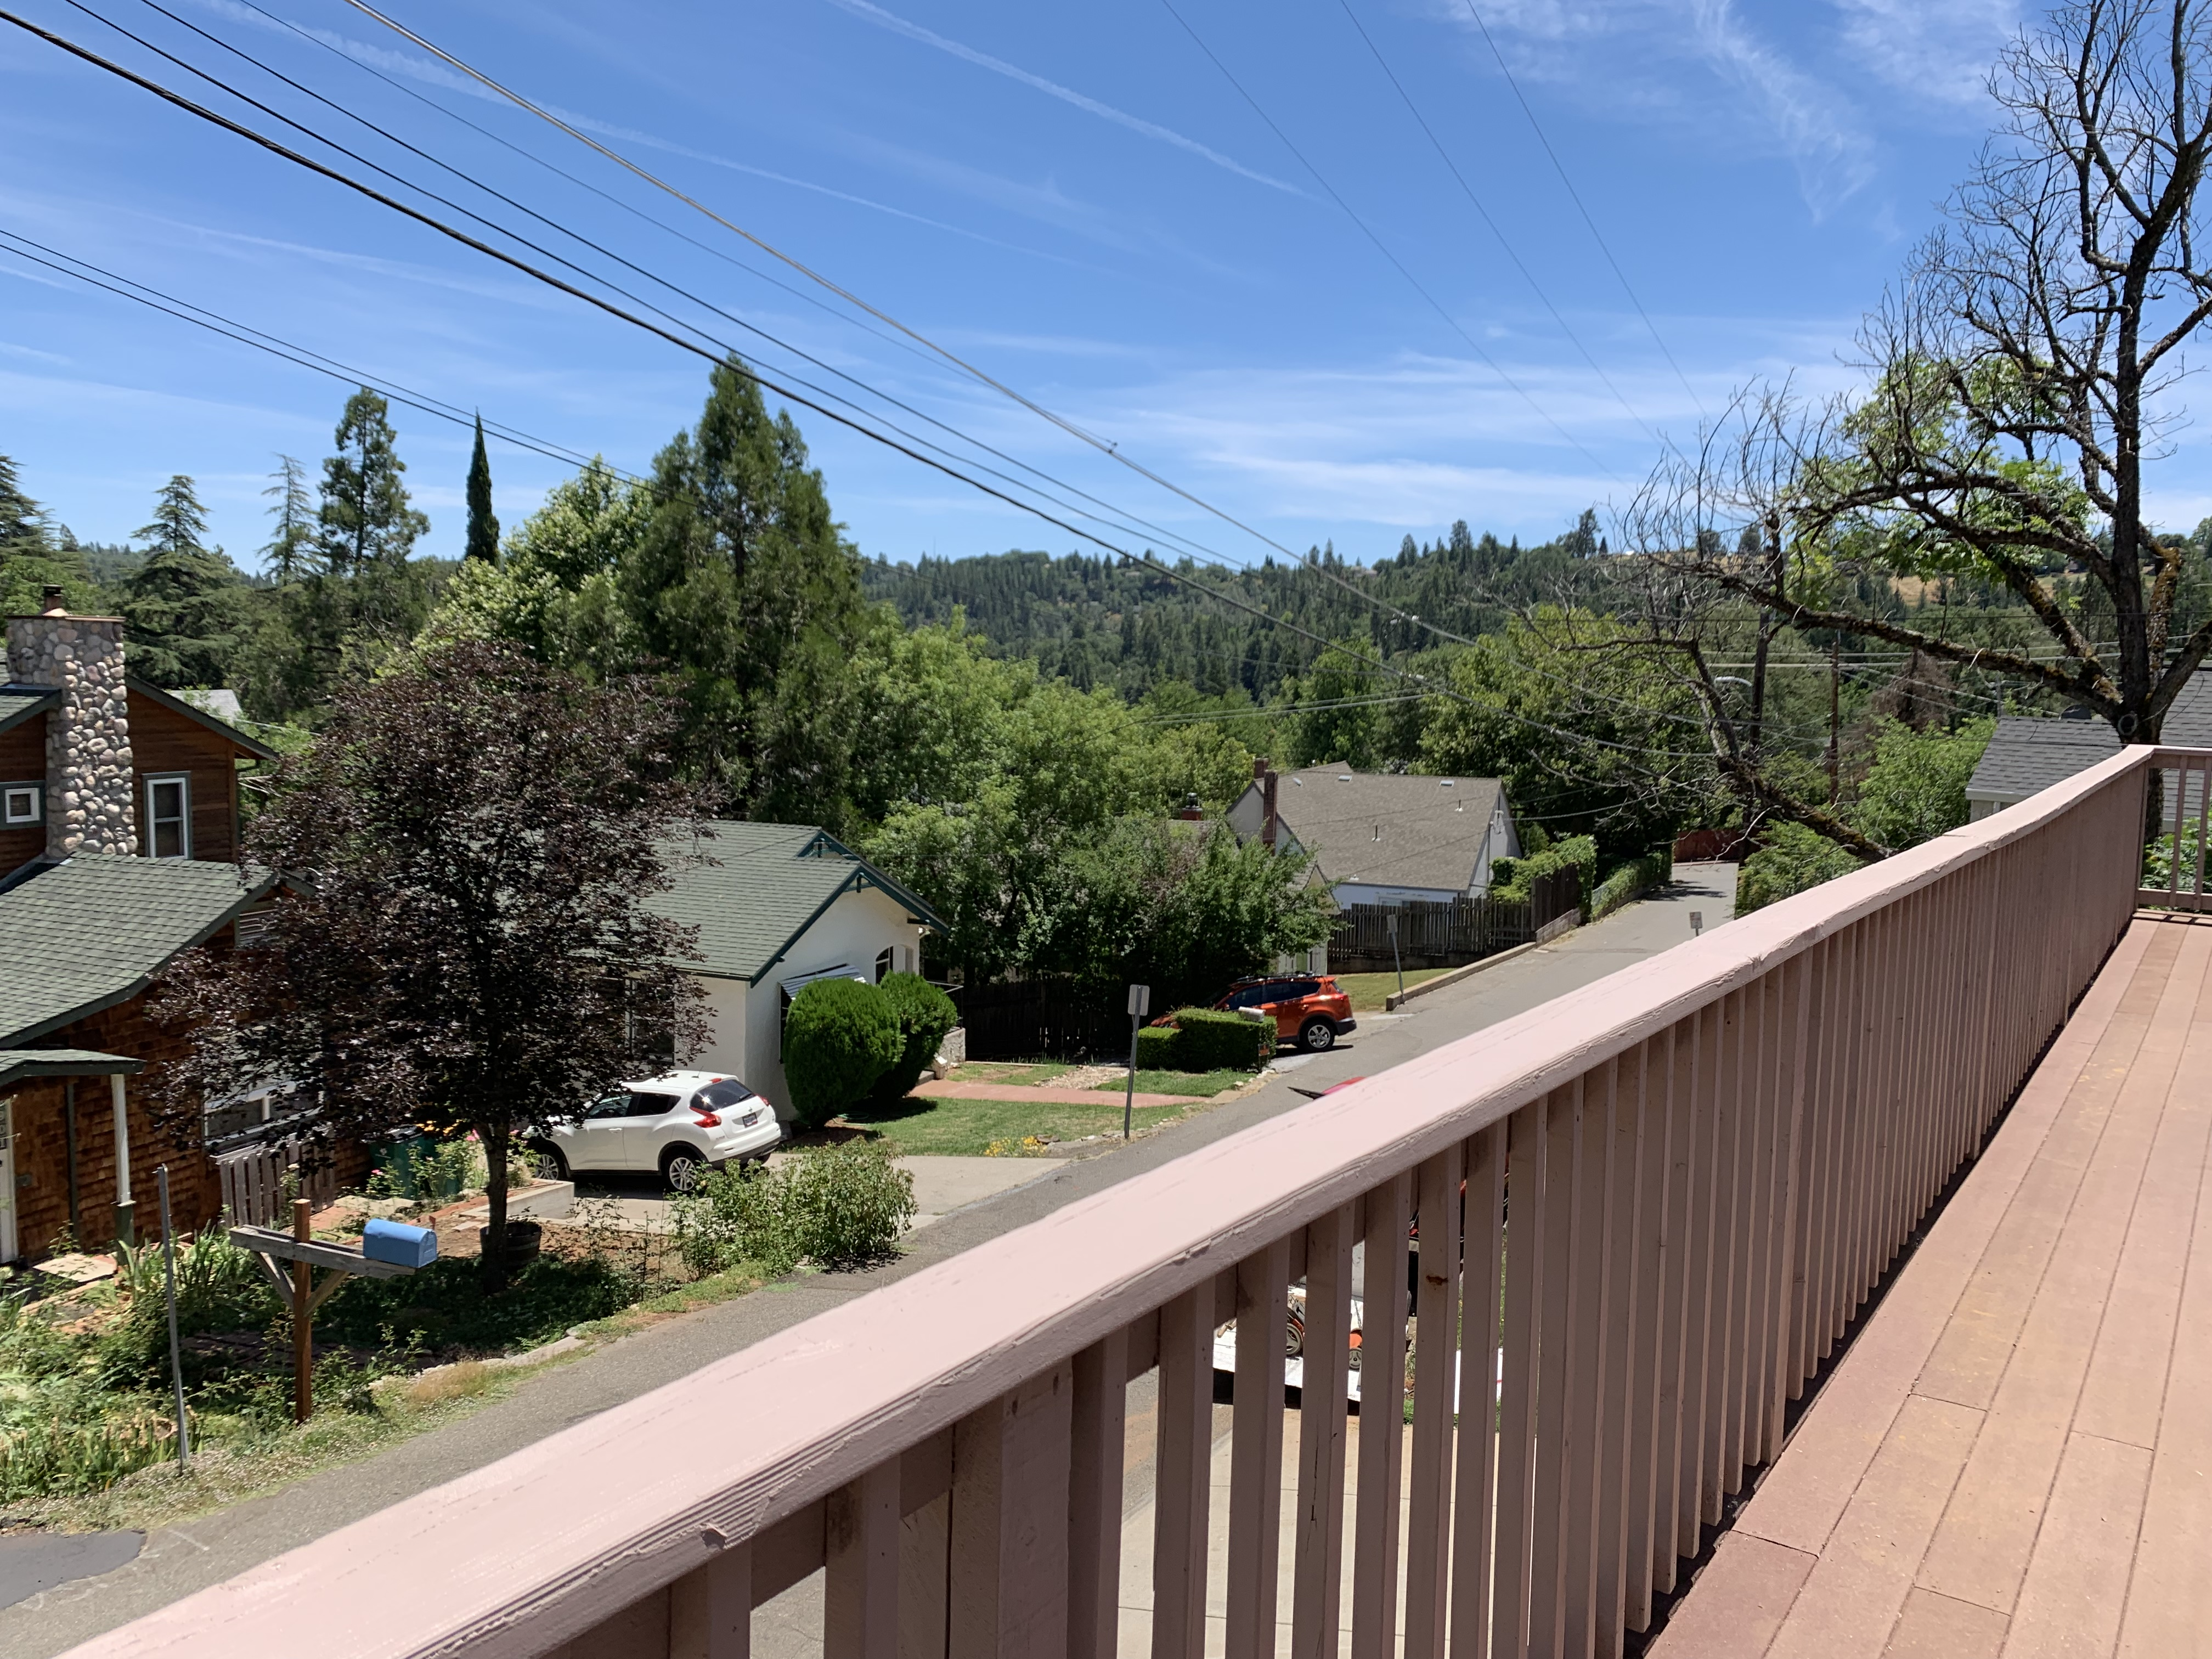 steve baker, graeme grant, Placerville realty, house for rent, home for rent, property manager, property management company, 762 Chamberlain Street - Placerville, Bathroom 2 of 2